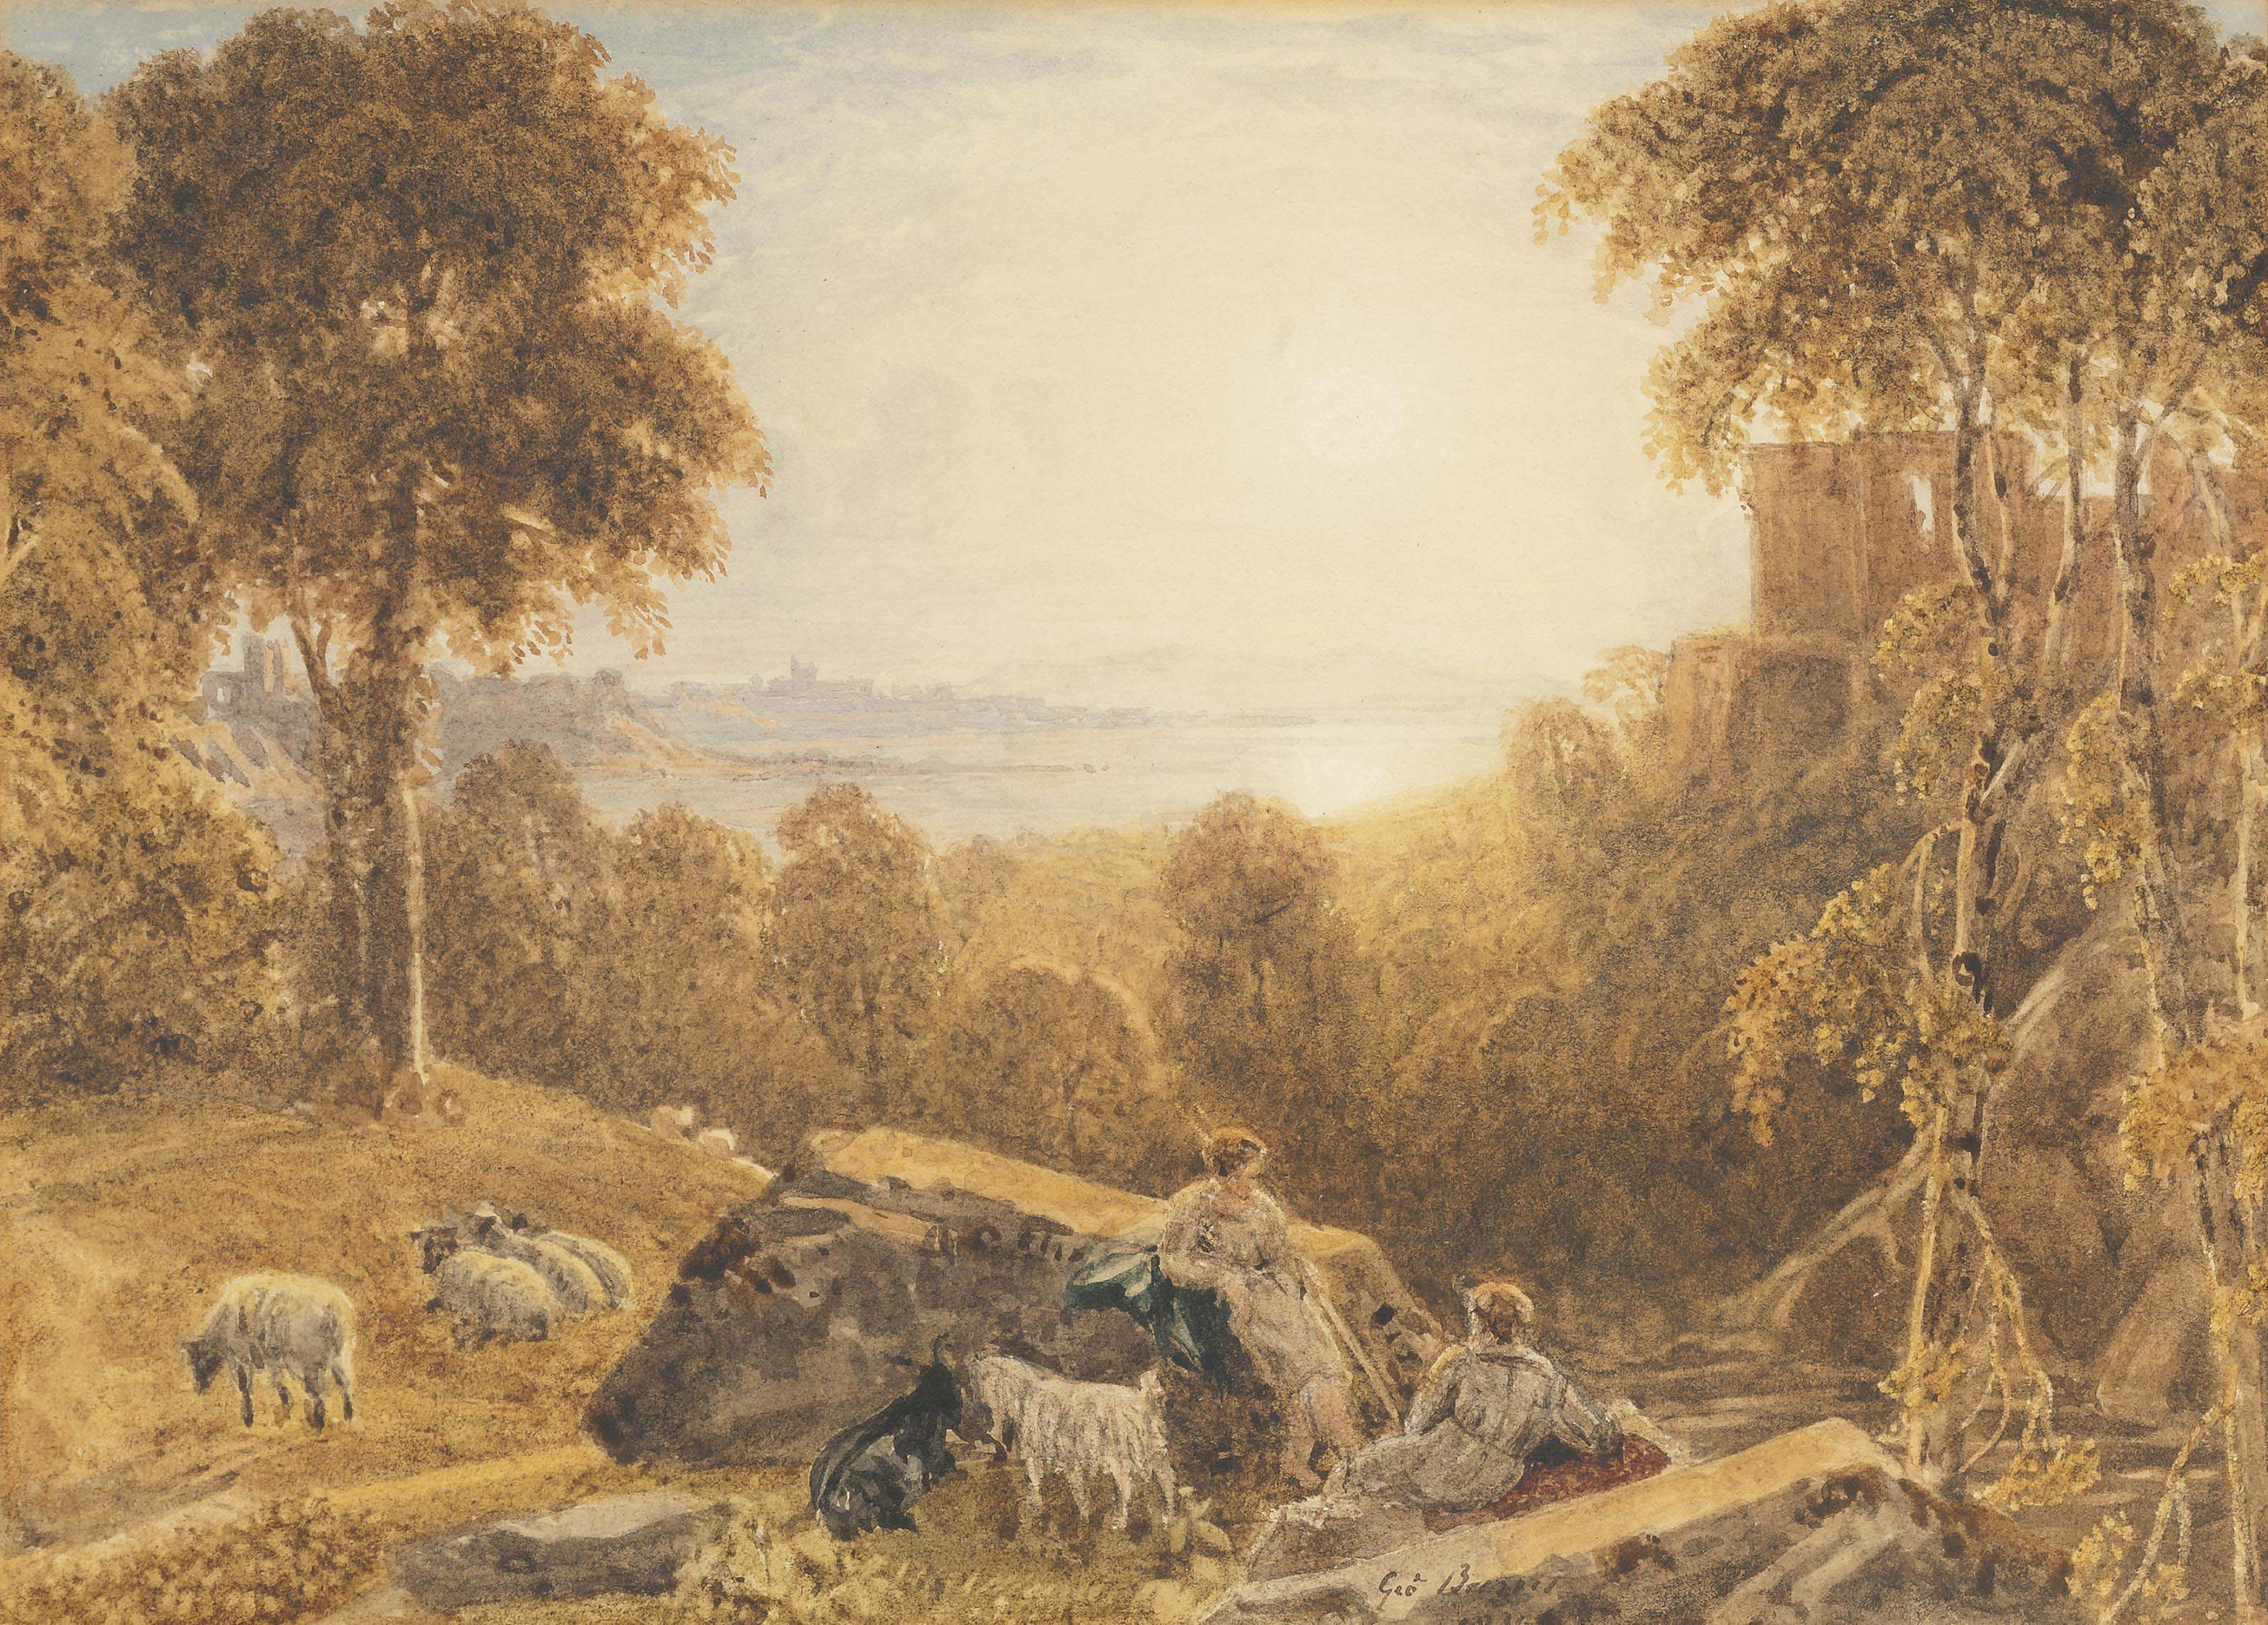 A shepherd and sheperdess with their flock in an Arcadian landscape